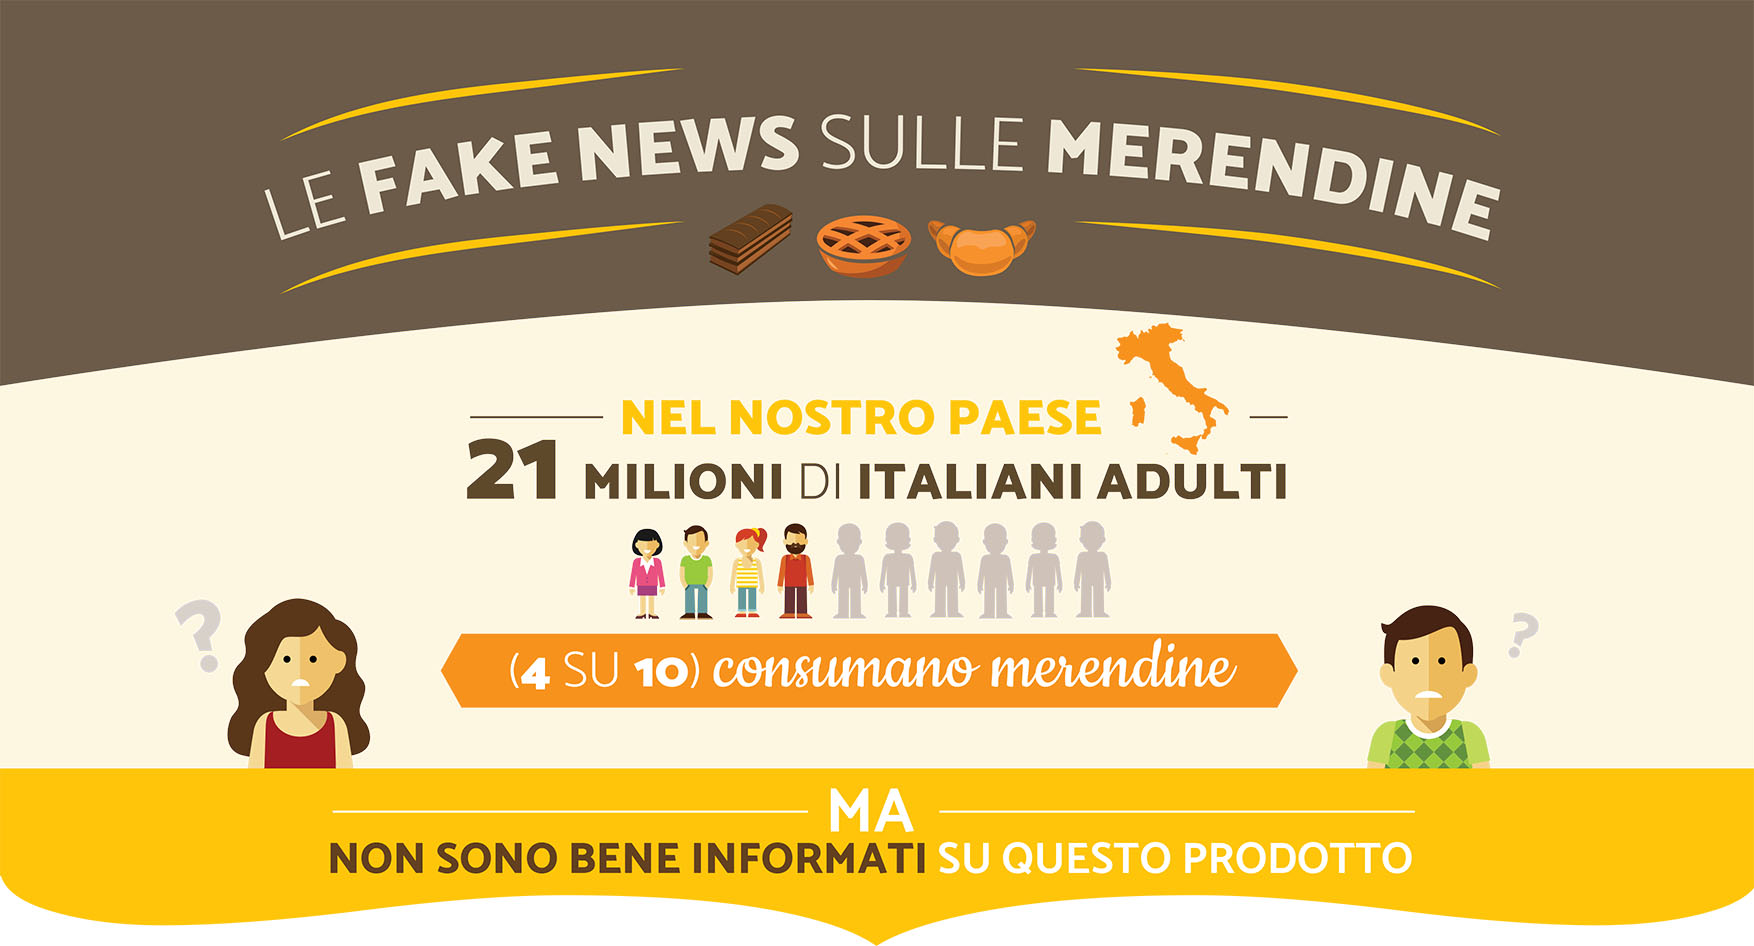 Merendine: fake news e post verità